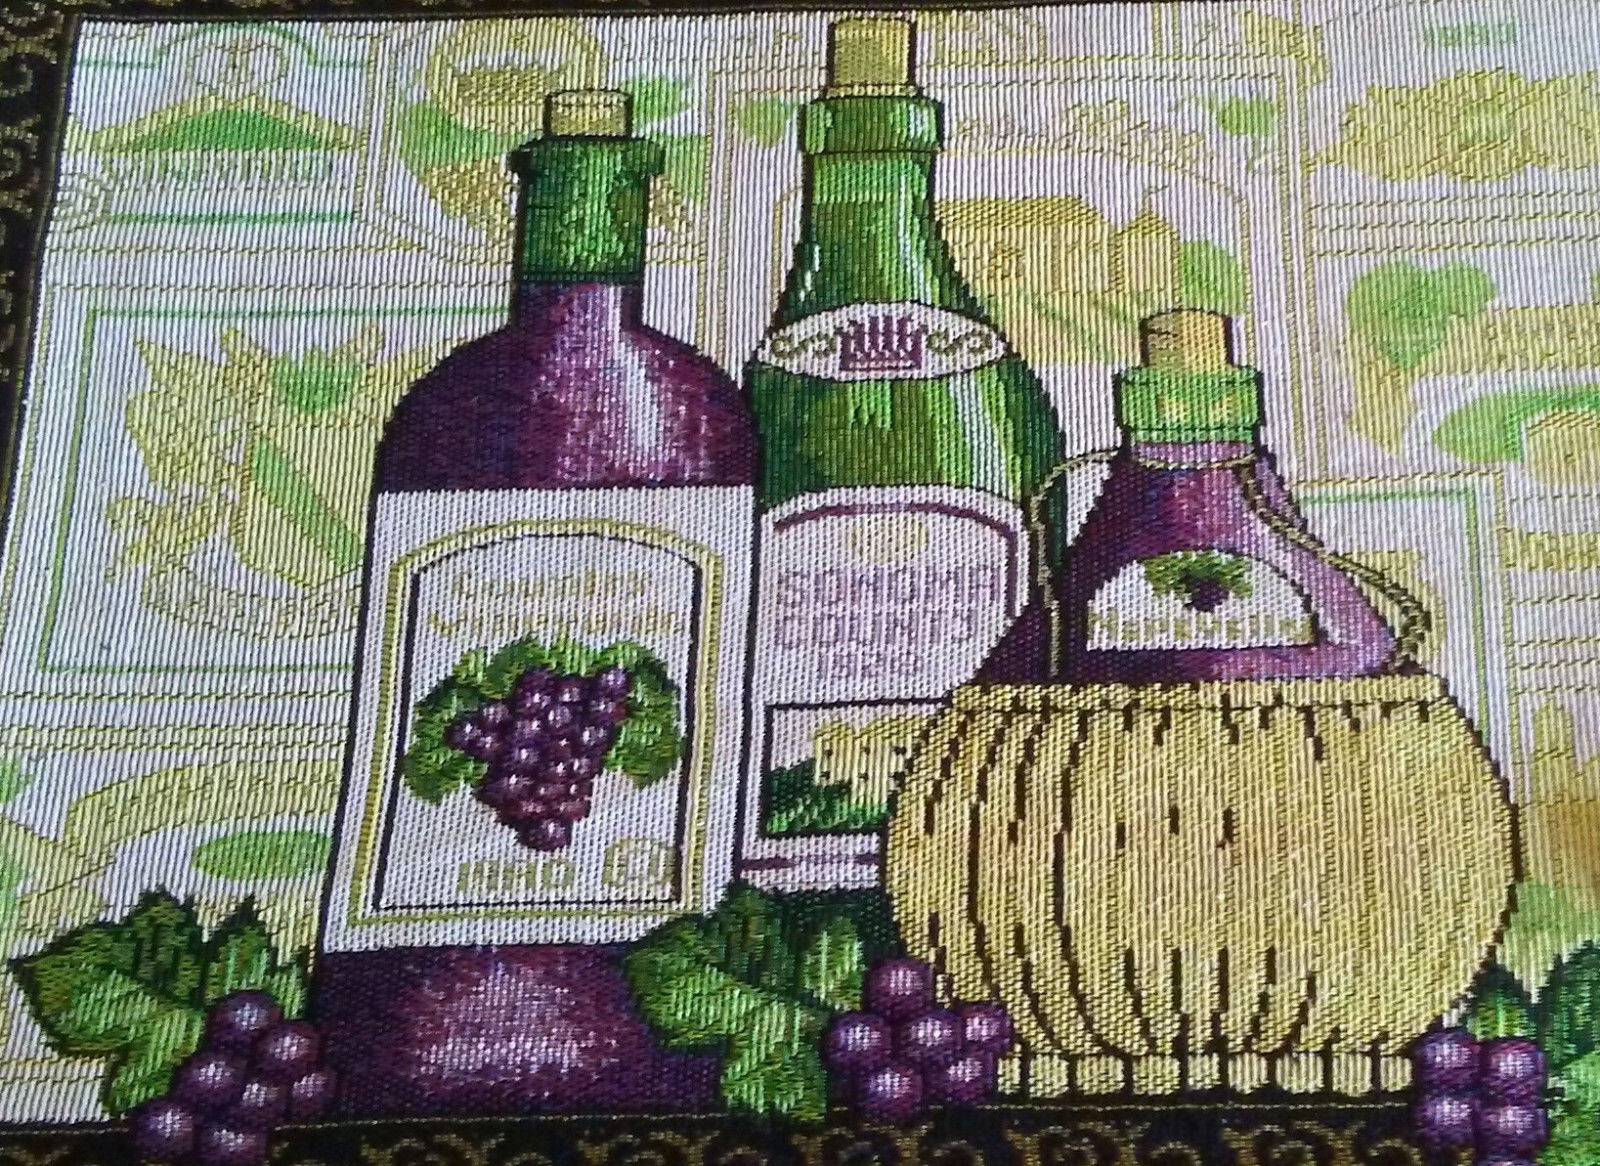 WINE TAPESTRY PLACEMATS Set of 4 Sonoma Vineyard Purple Green Fabric 13x19 NEW